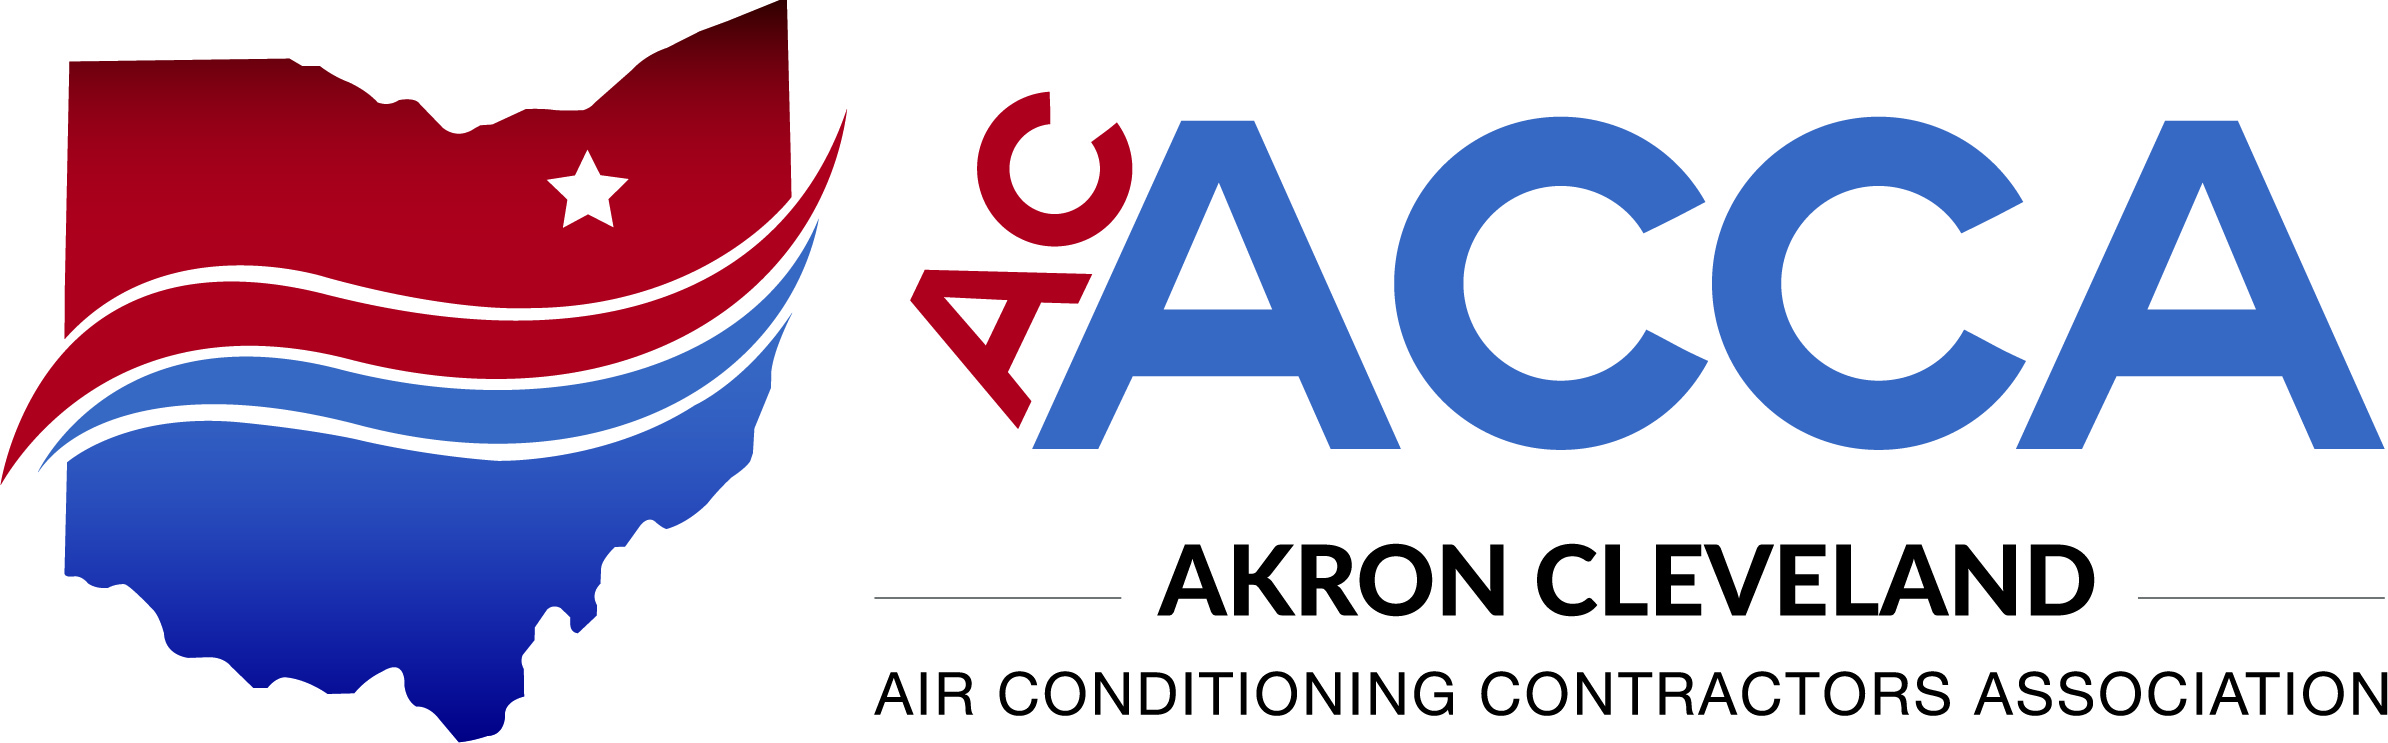 Akron Cleveland Air Conditioning Contractors Association